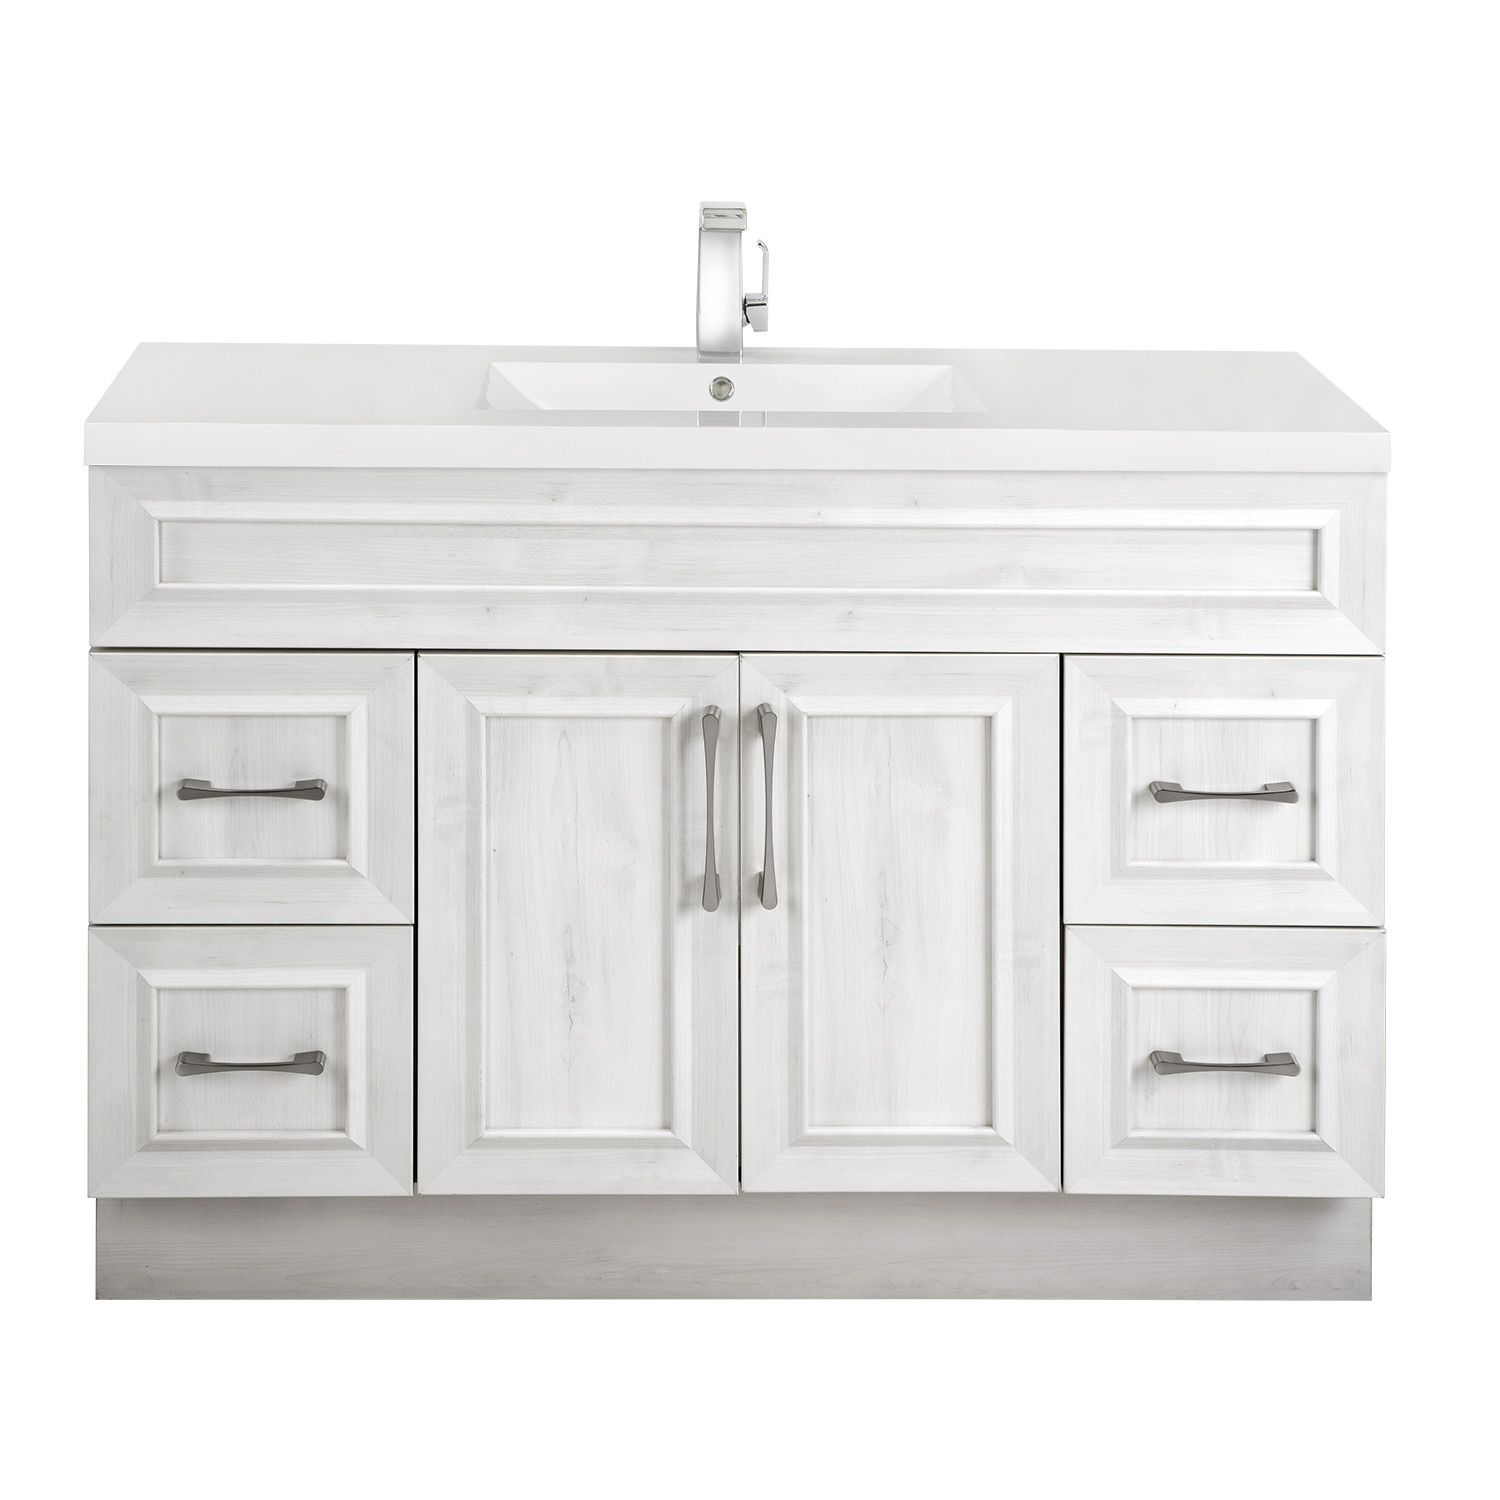 vanities tops white p collection acrylic fv bath top w h textures kitchen contour with vanity x d cutler in basin